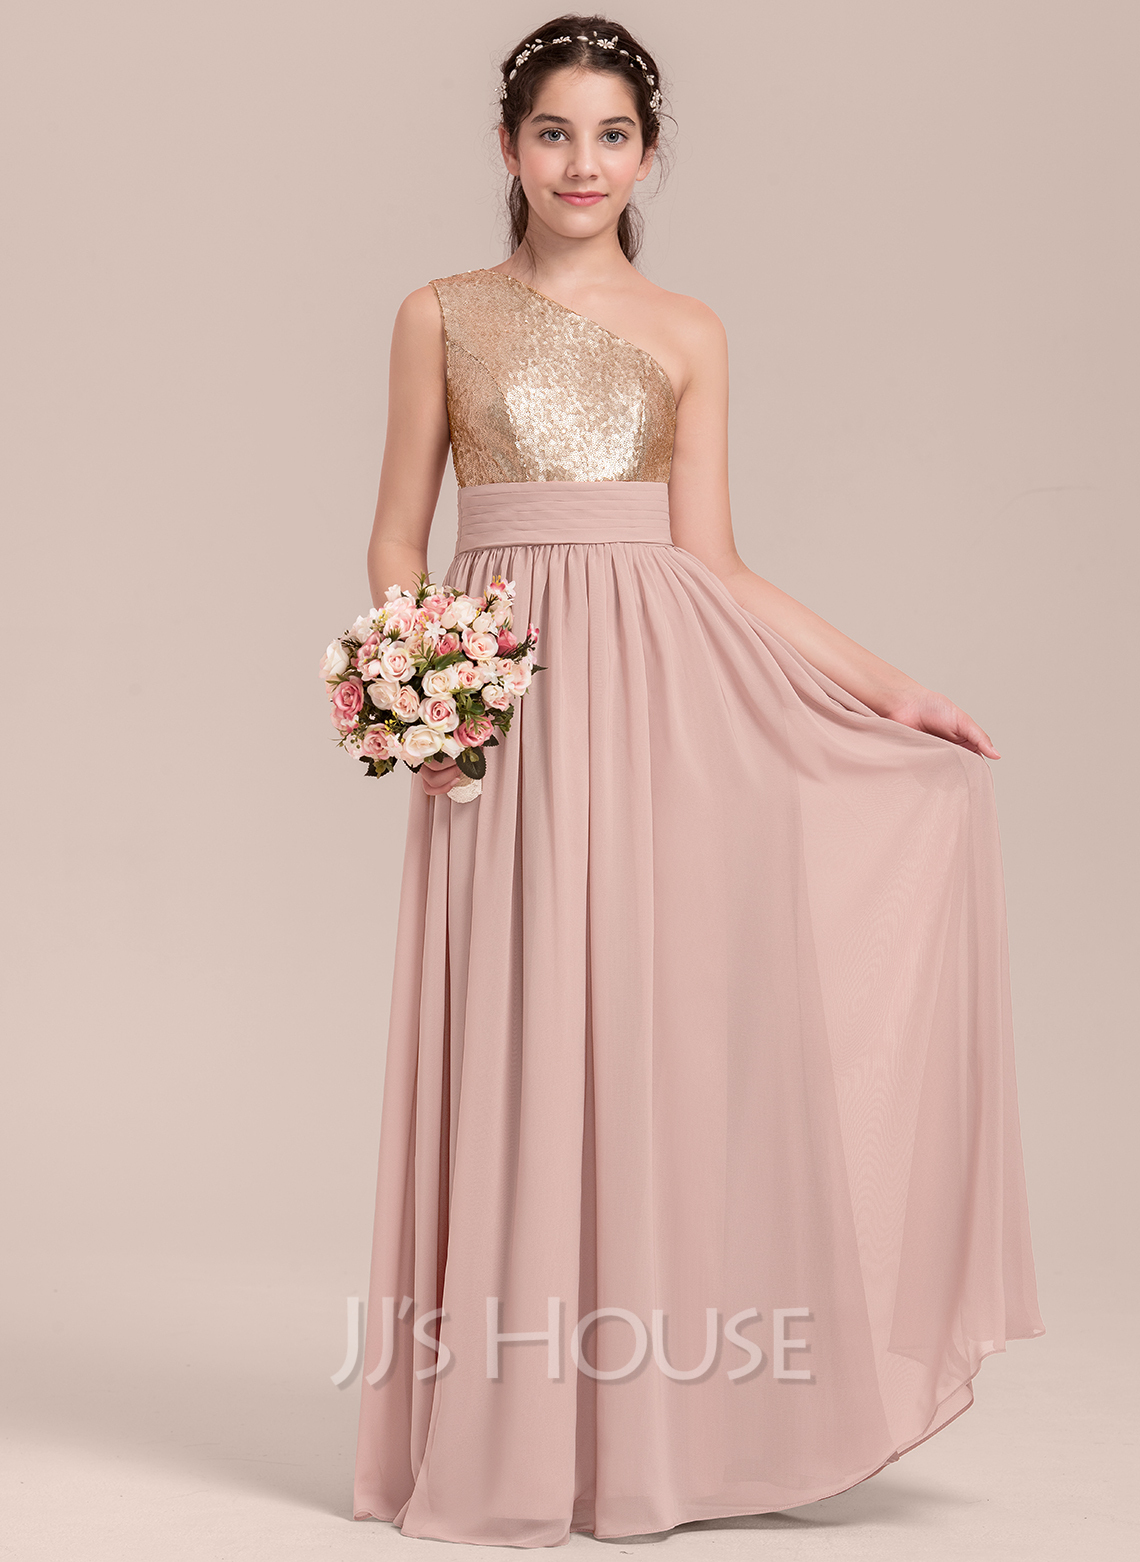 A-Line Princess One-Shoulder Floor-Length Chiffon Junior Bridesmaid Dress  With. Loading zoom d57f8ca899c3